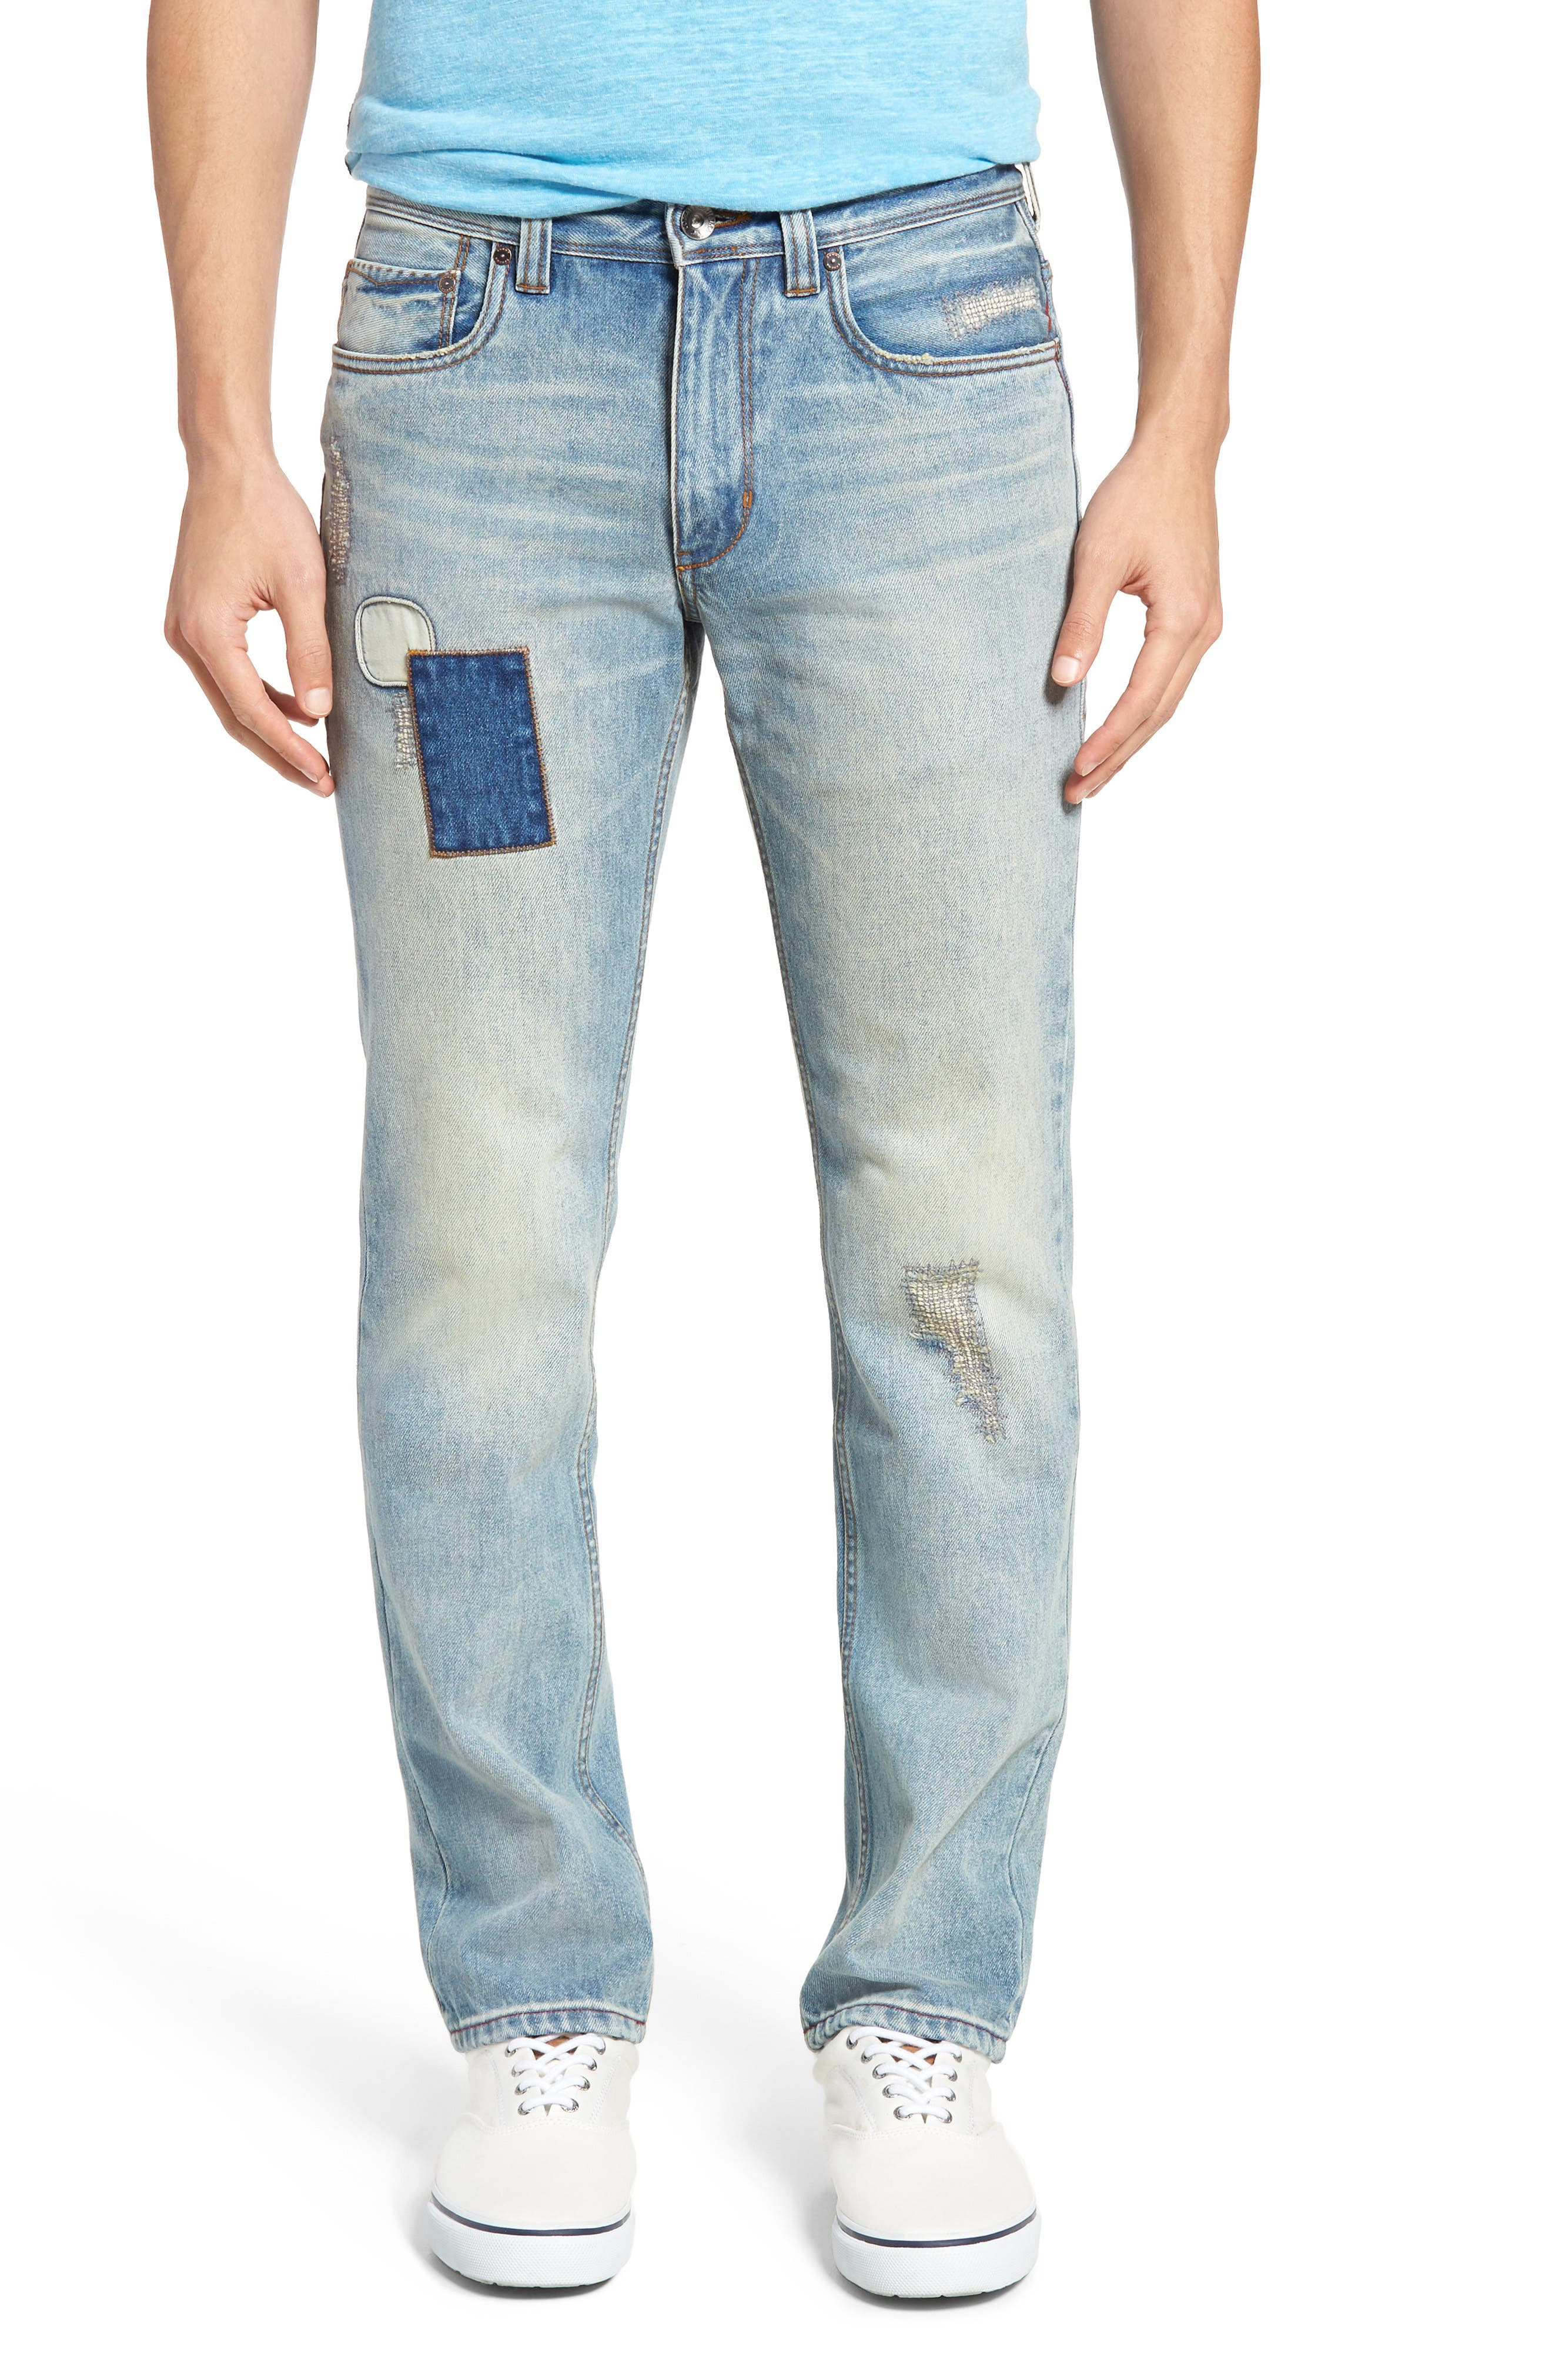 Castaway Slim Fit Jeans,                         Main,                         color, 400